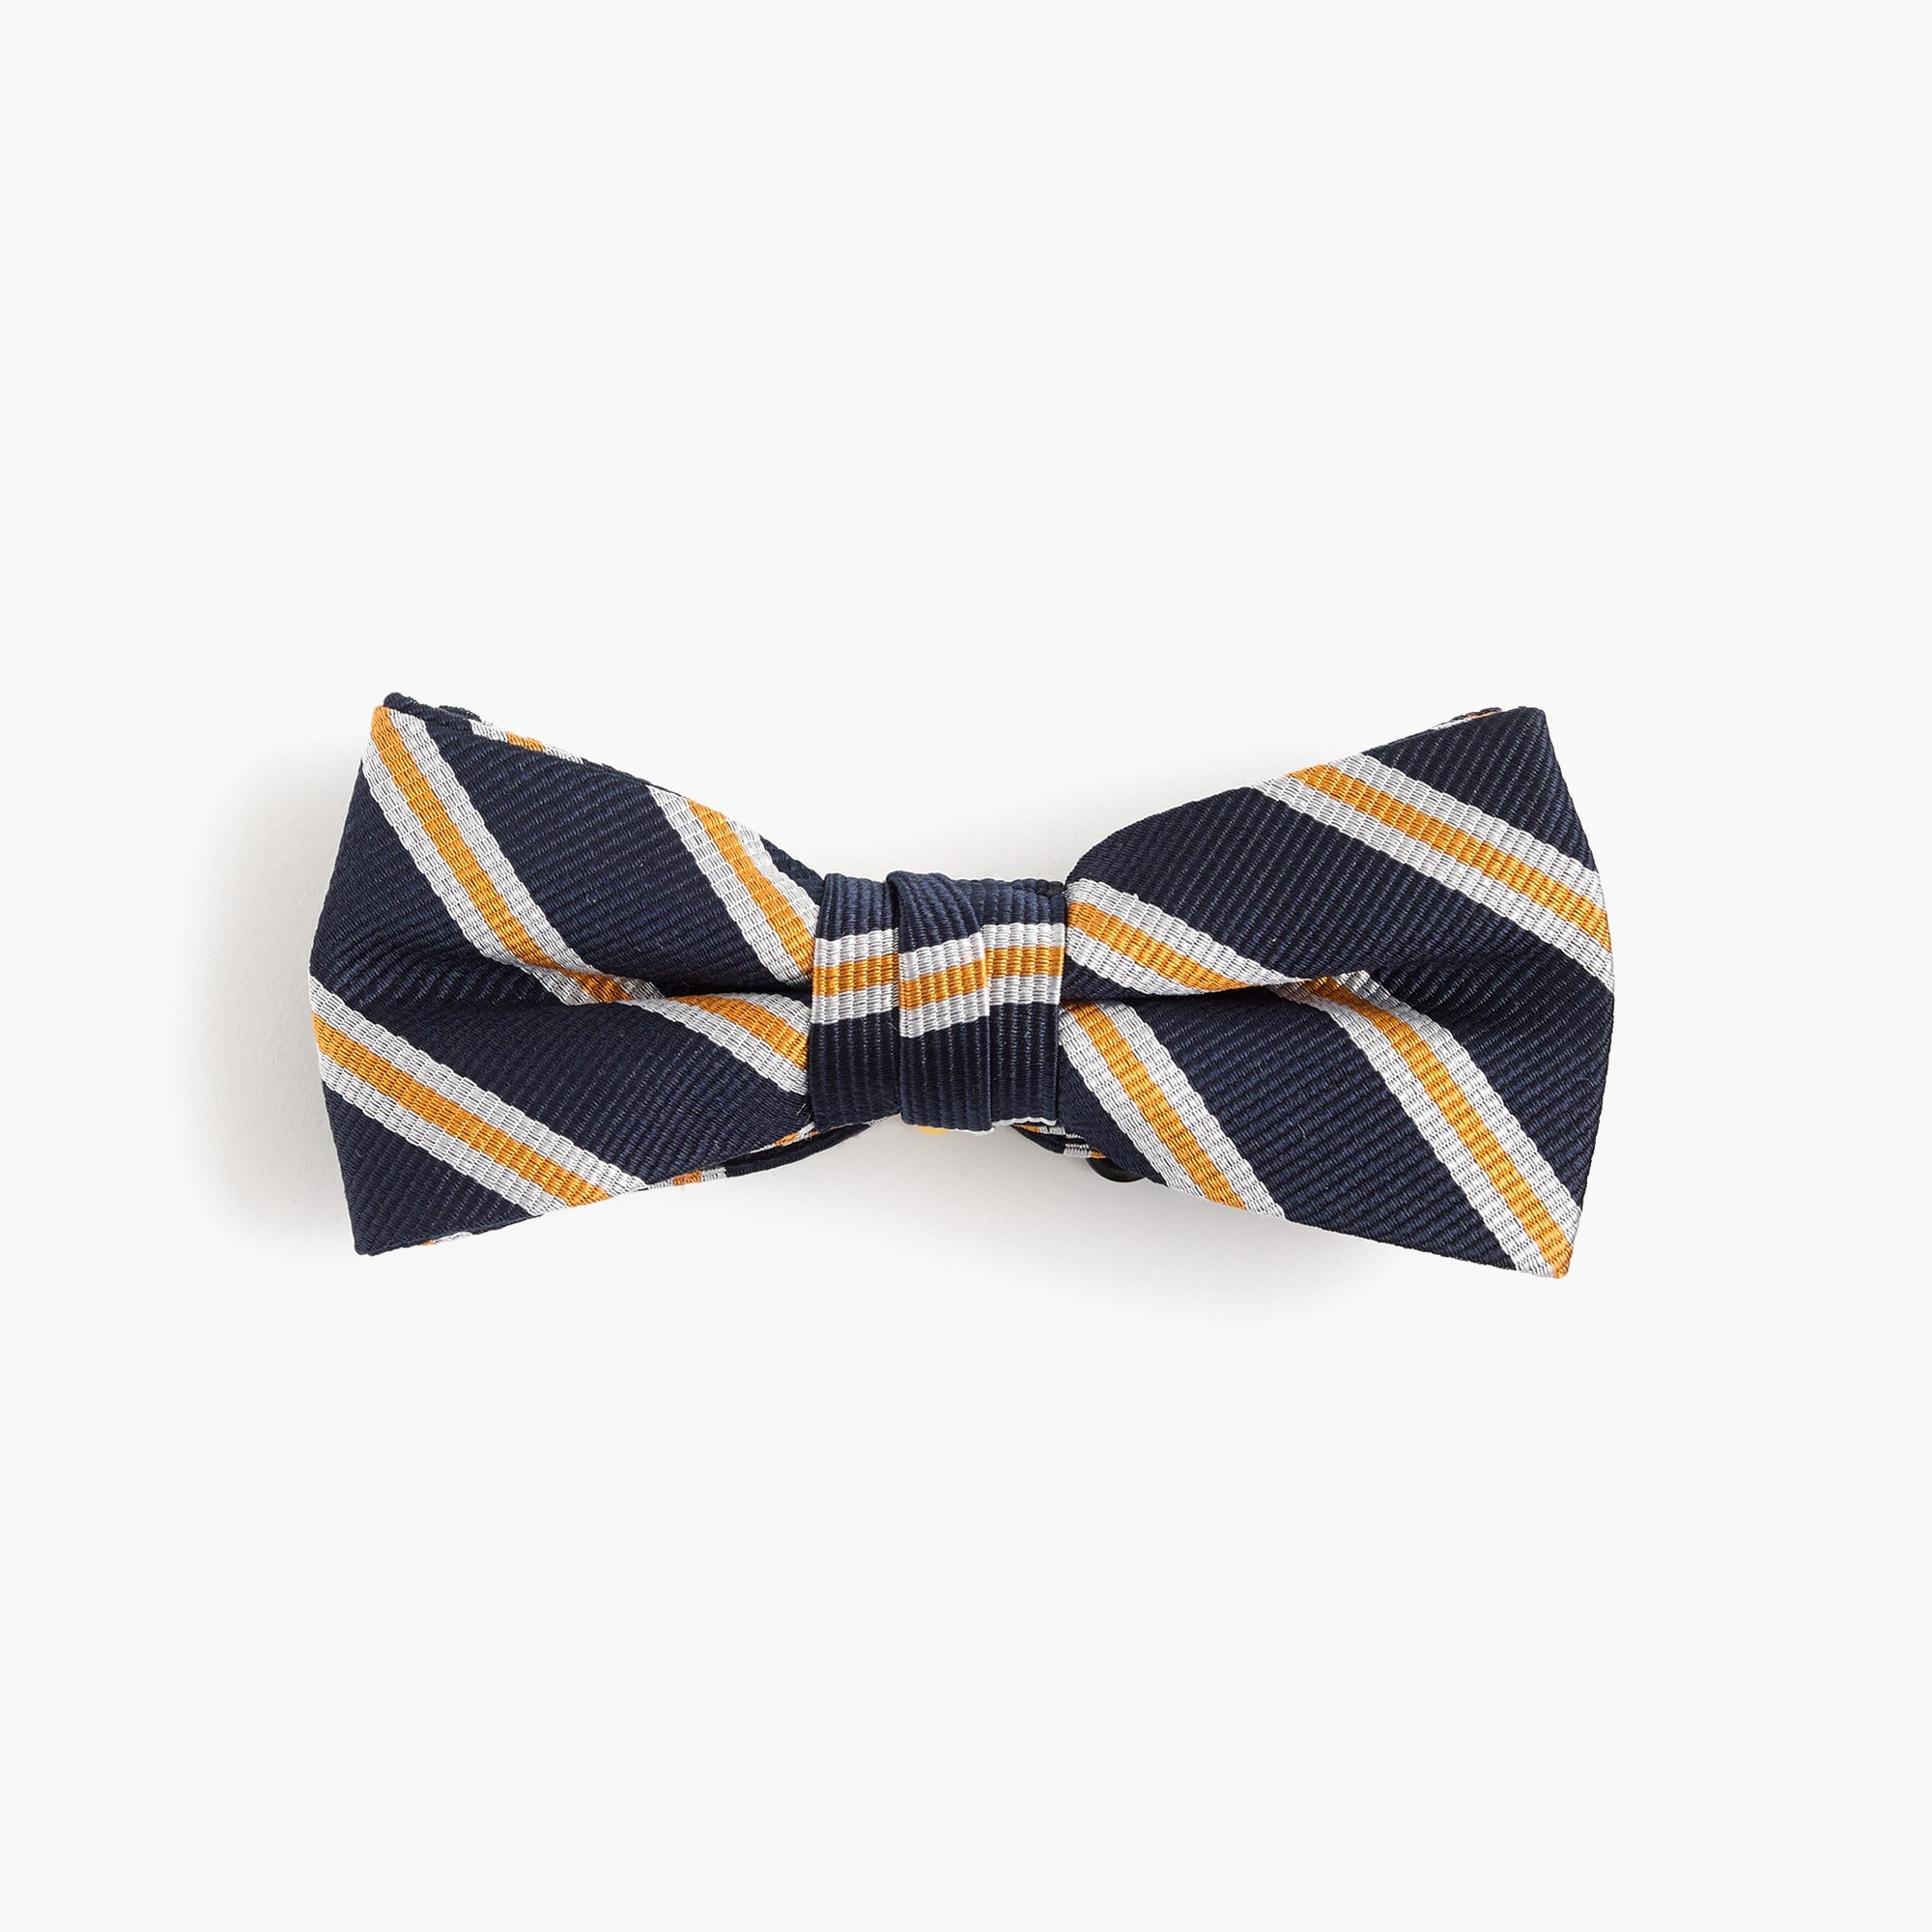 Image 1 for Boys' silk bow tie in stripe